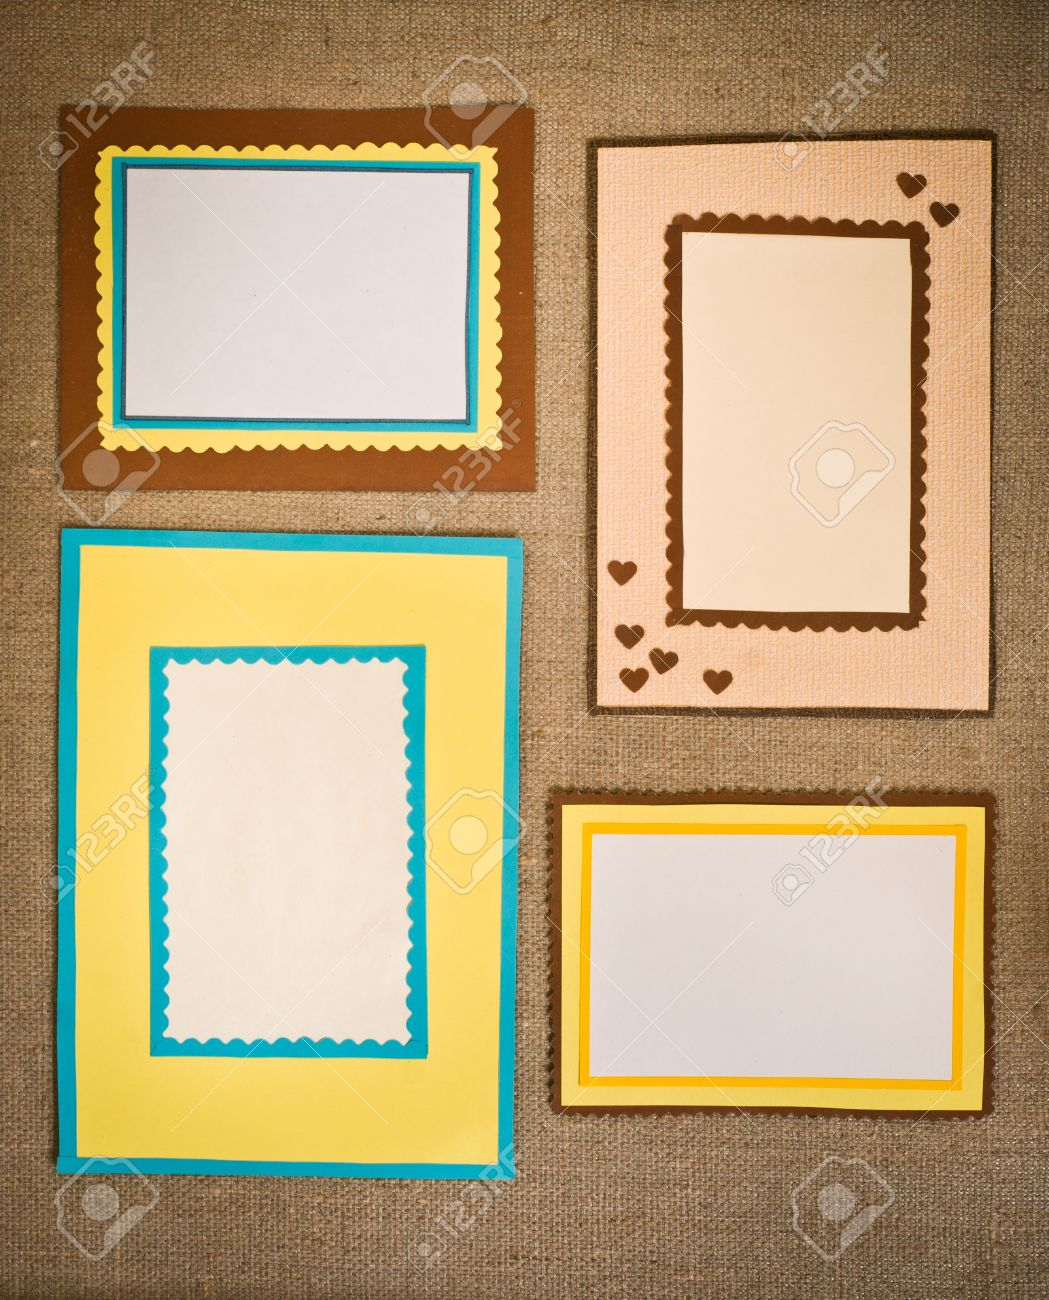 The Four Frames Of Colored Paper Stock Photo, Picture And Royalty ...